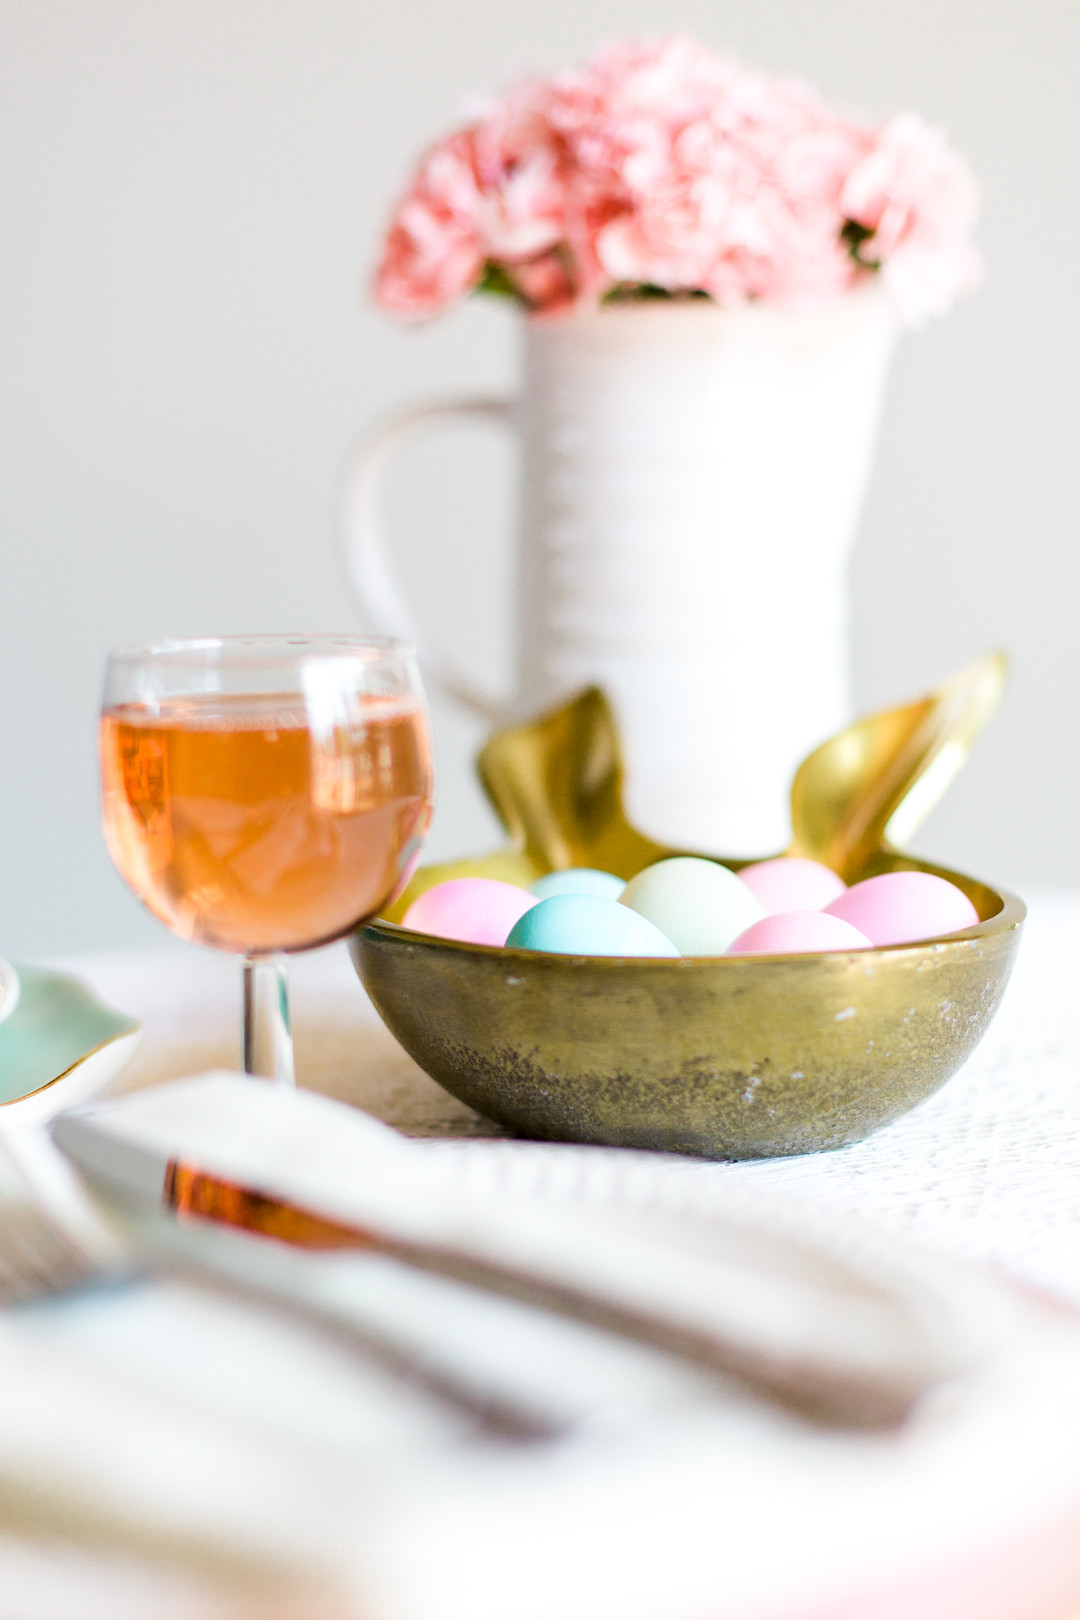 Staal_KristinaStaalPhotography_KristinaStaalPhotographyEasterTablescape20161_big Easy Entertaining: Easter Brunch Inspiration for Two